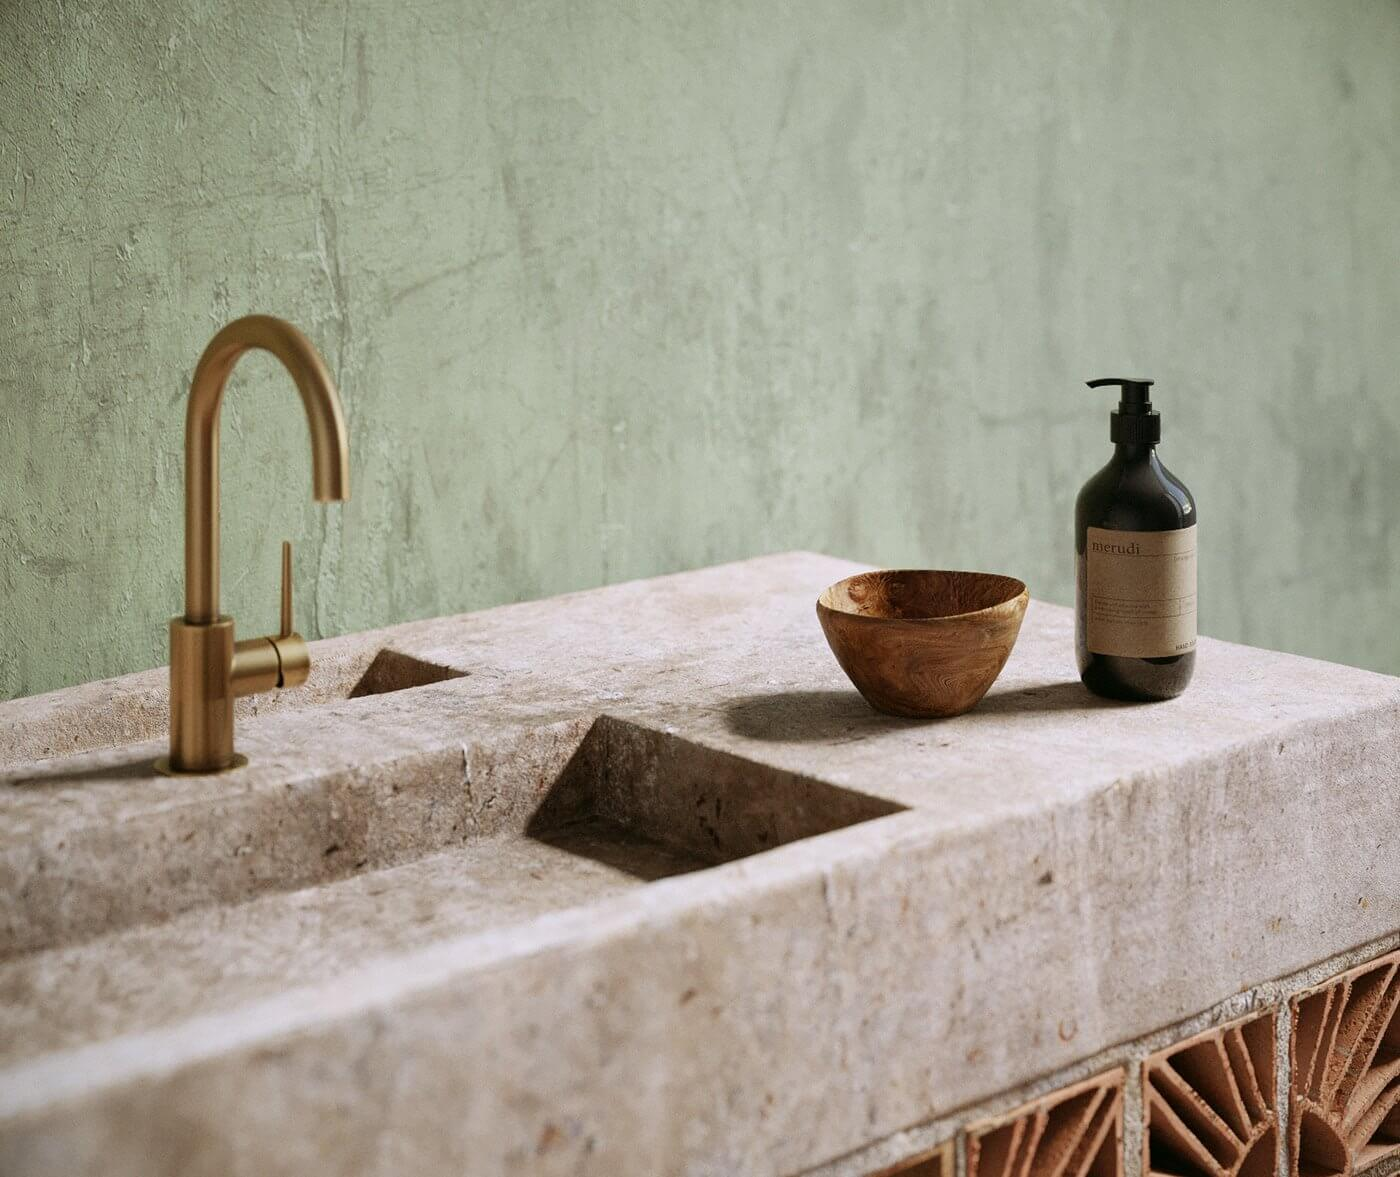 Softrime Bathroom Design stone wash basin detail - cgi visualization